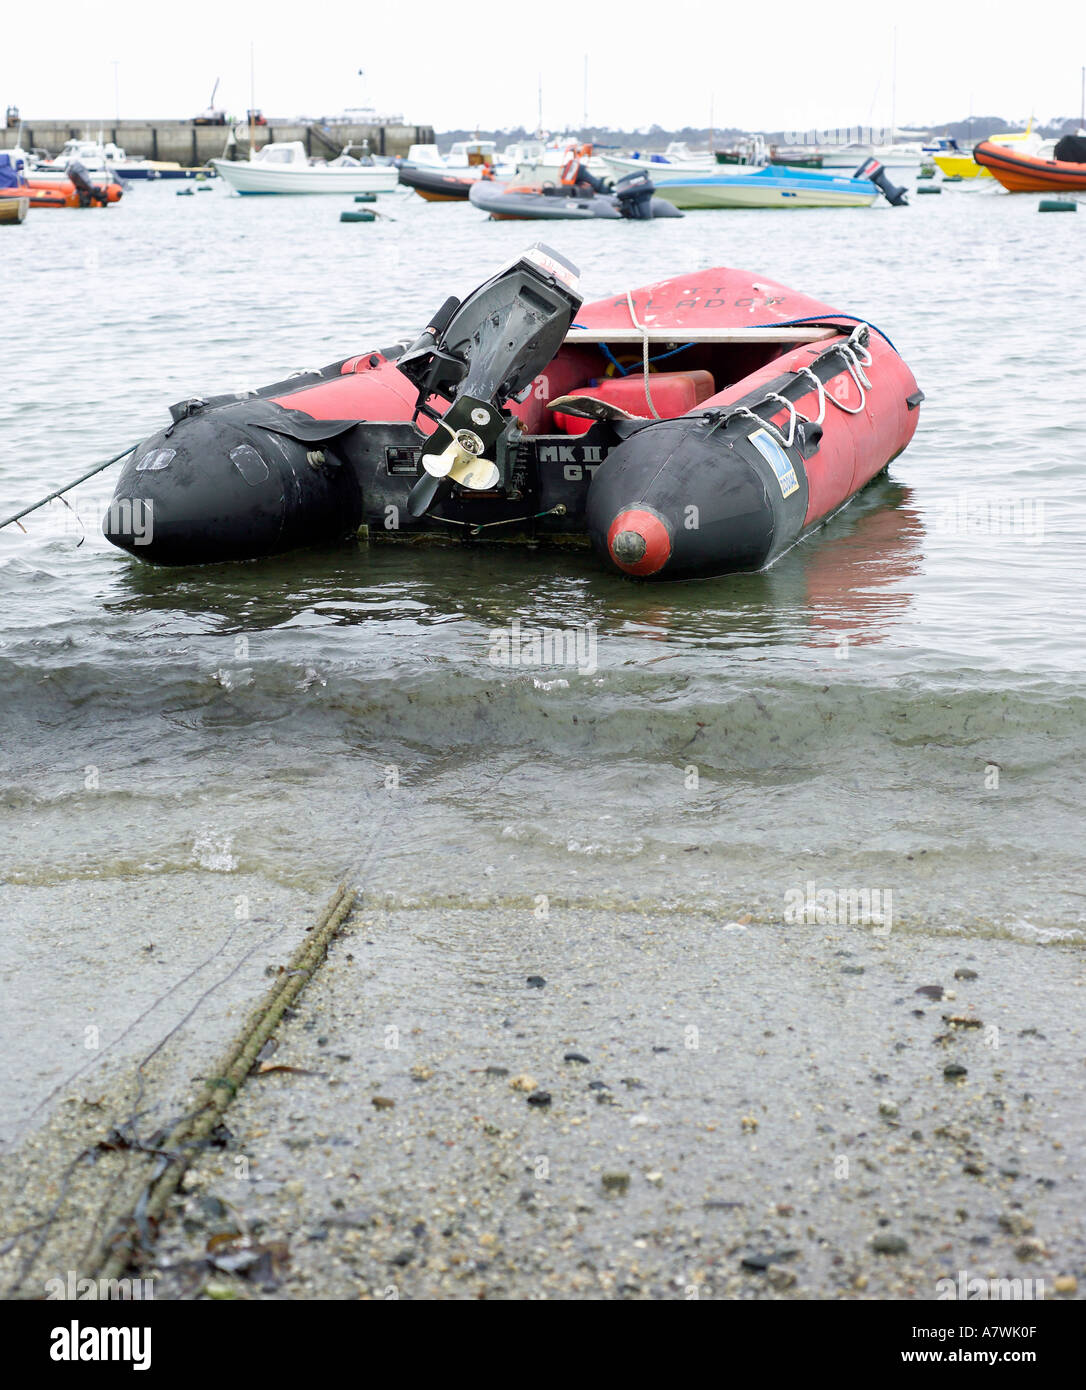 dingy with outboard motor moored in St marys hourbour Isles of Scilly - Stock Image